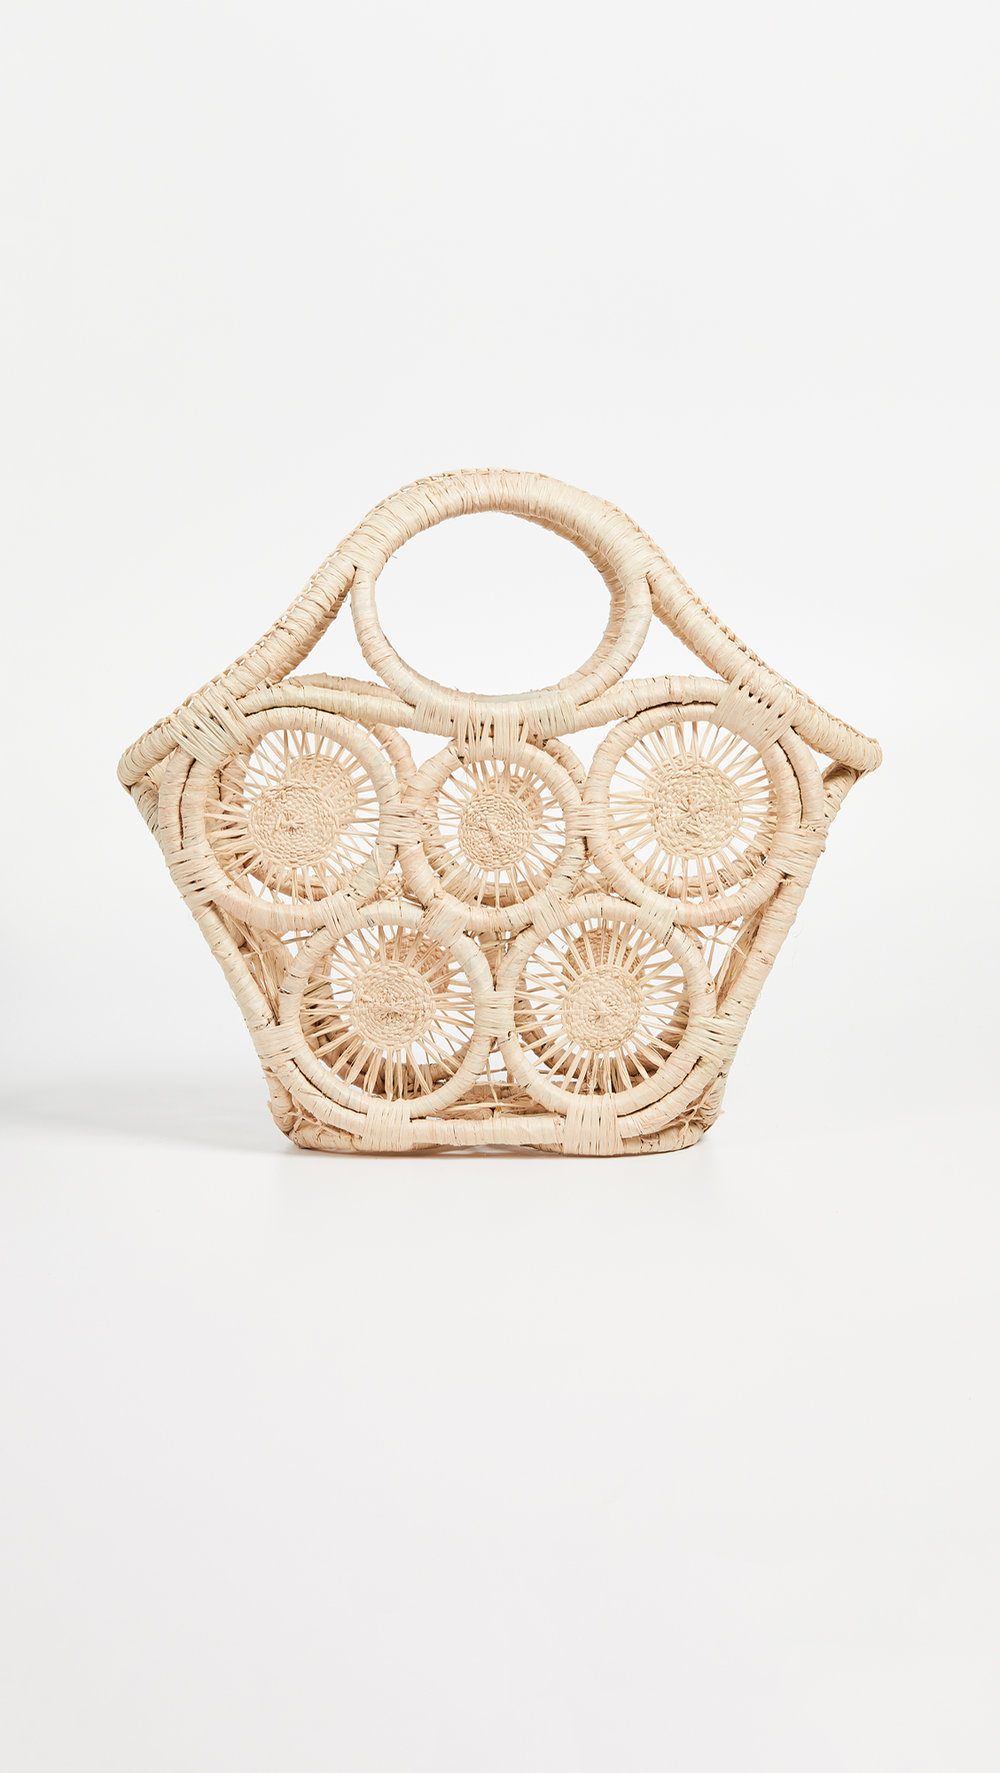 this  sunburst pattern straw bag  is absolute perfection! it's on major sale today!